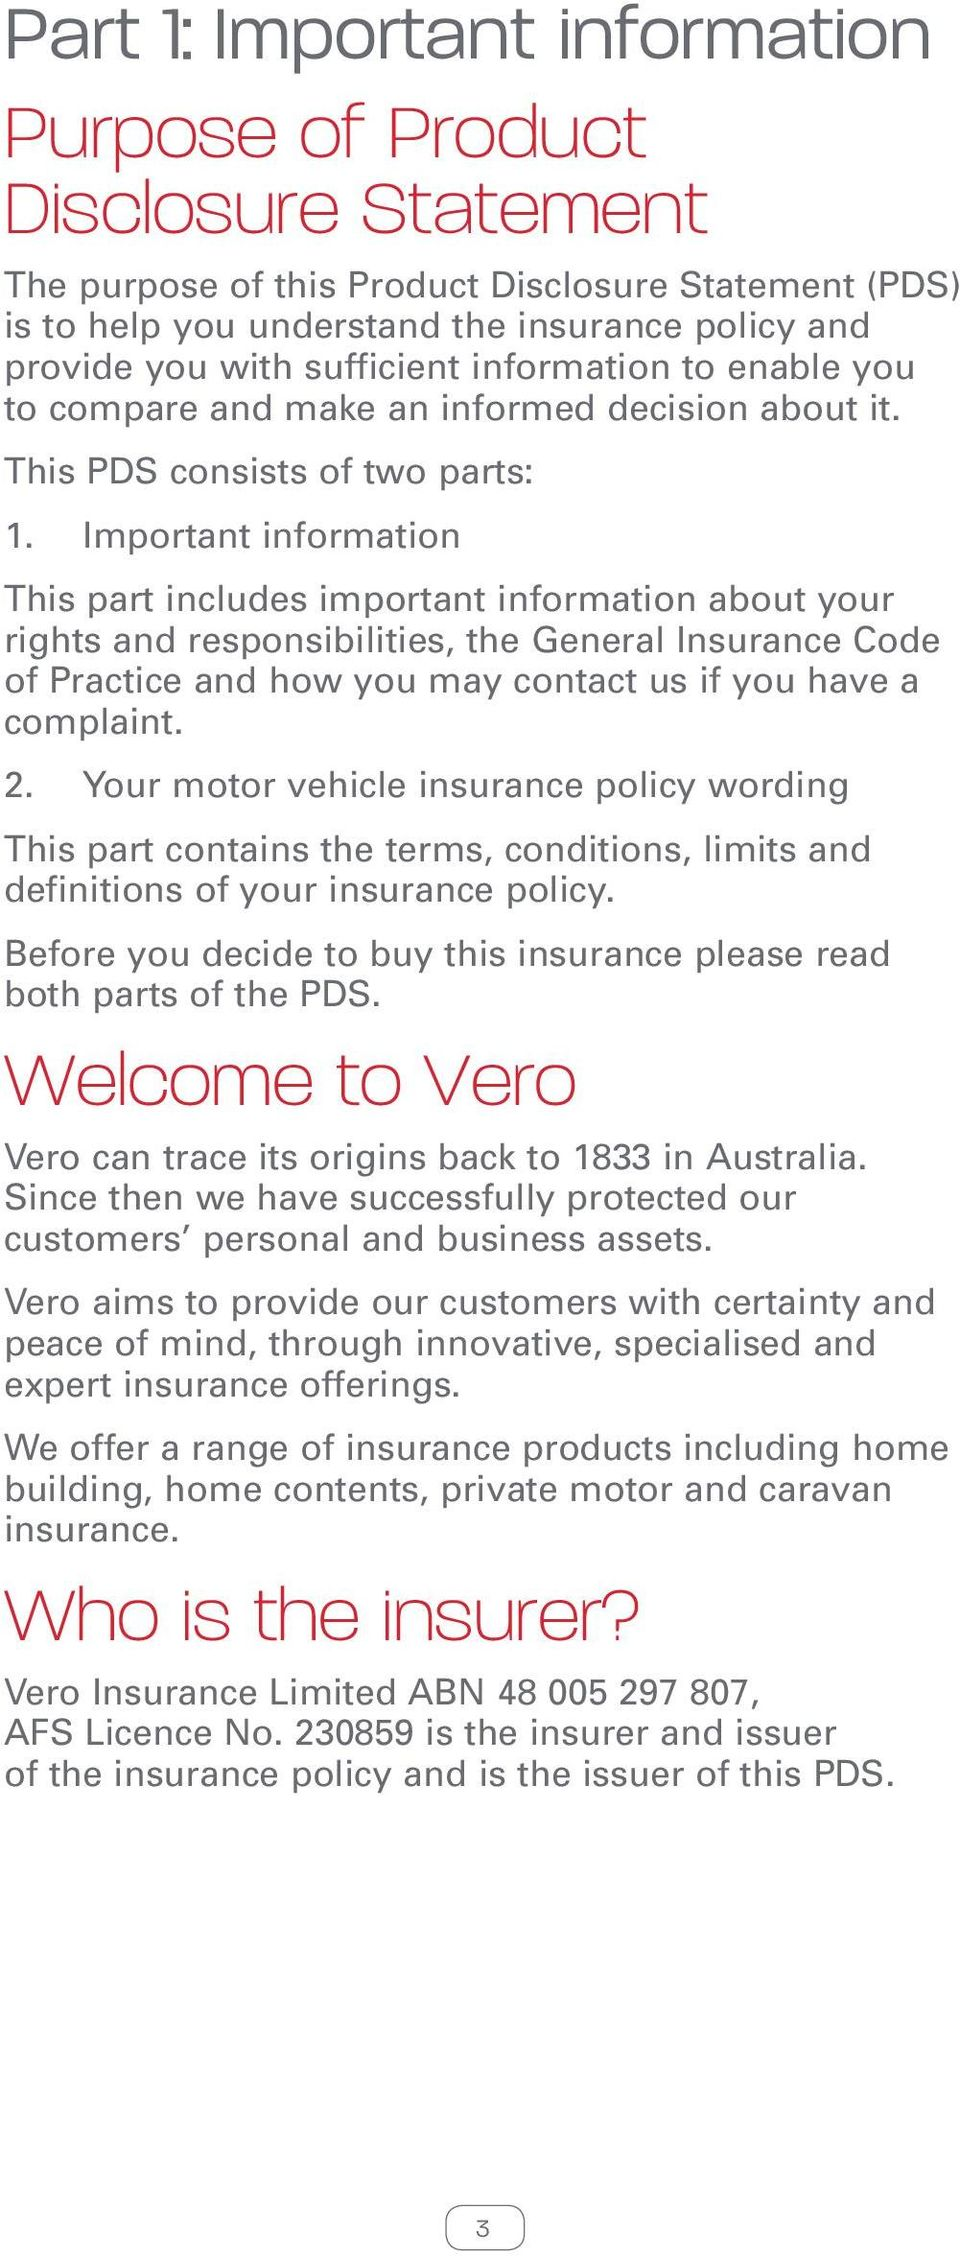 Important information This part includes important information about your rights and responsibilities, the General Insurance Code of Practice and how you may contact us if you have a complaint. 2.